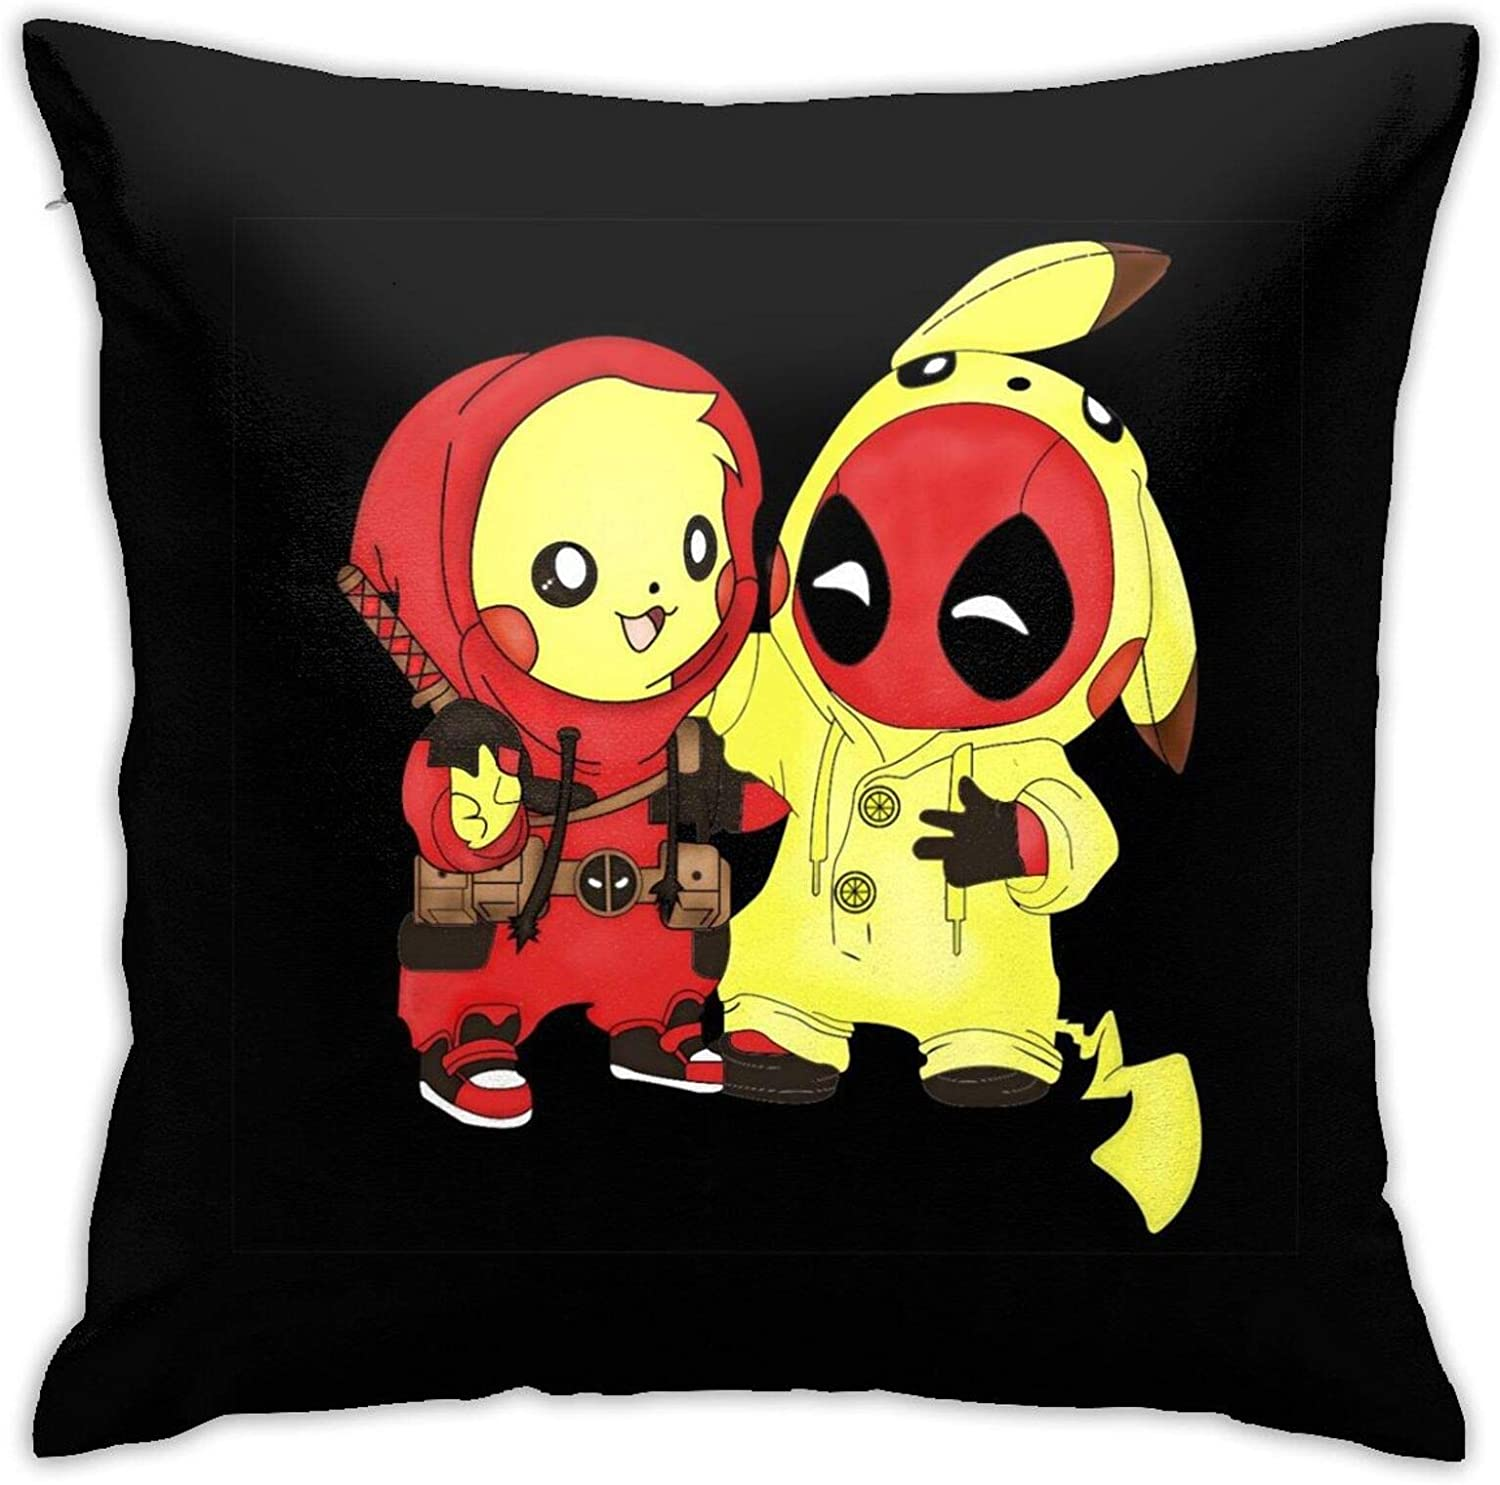 Gocerktr Pikachu Pet Monster and Deadpool Pikapool Square Pillow Covers Decorative Cushion Pillowcase for Sofa Home Bedroom Bed 18 X 18 Inch